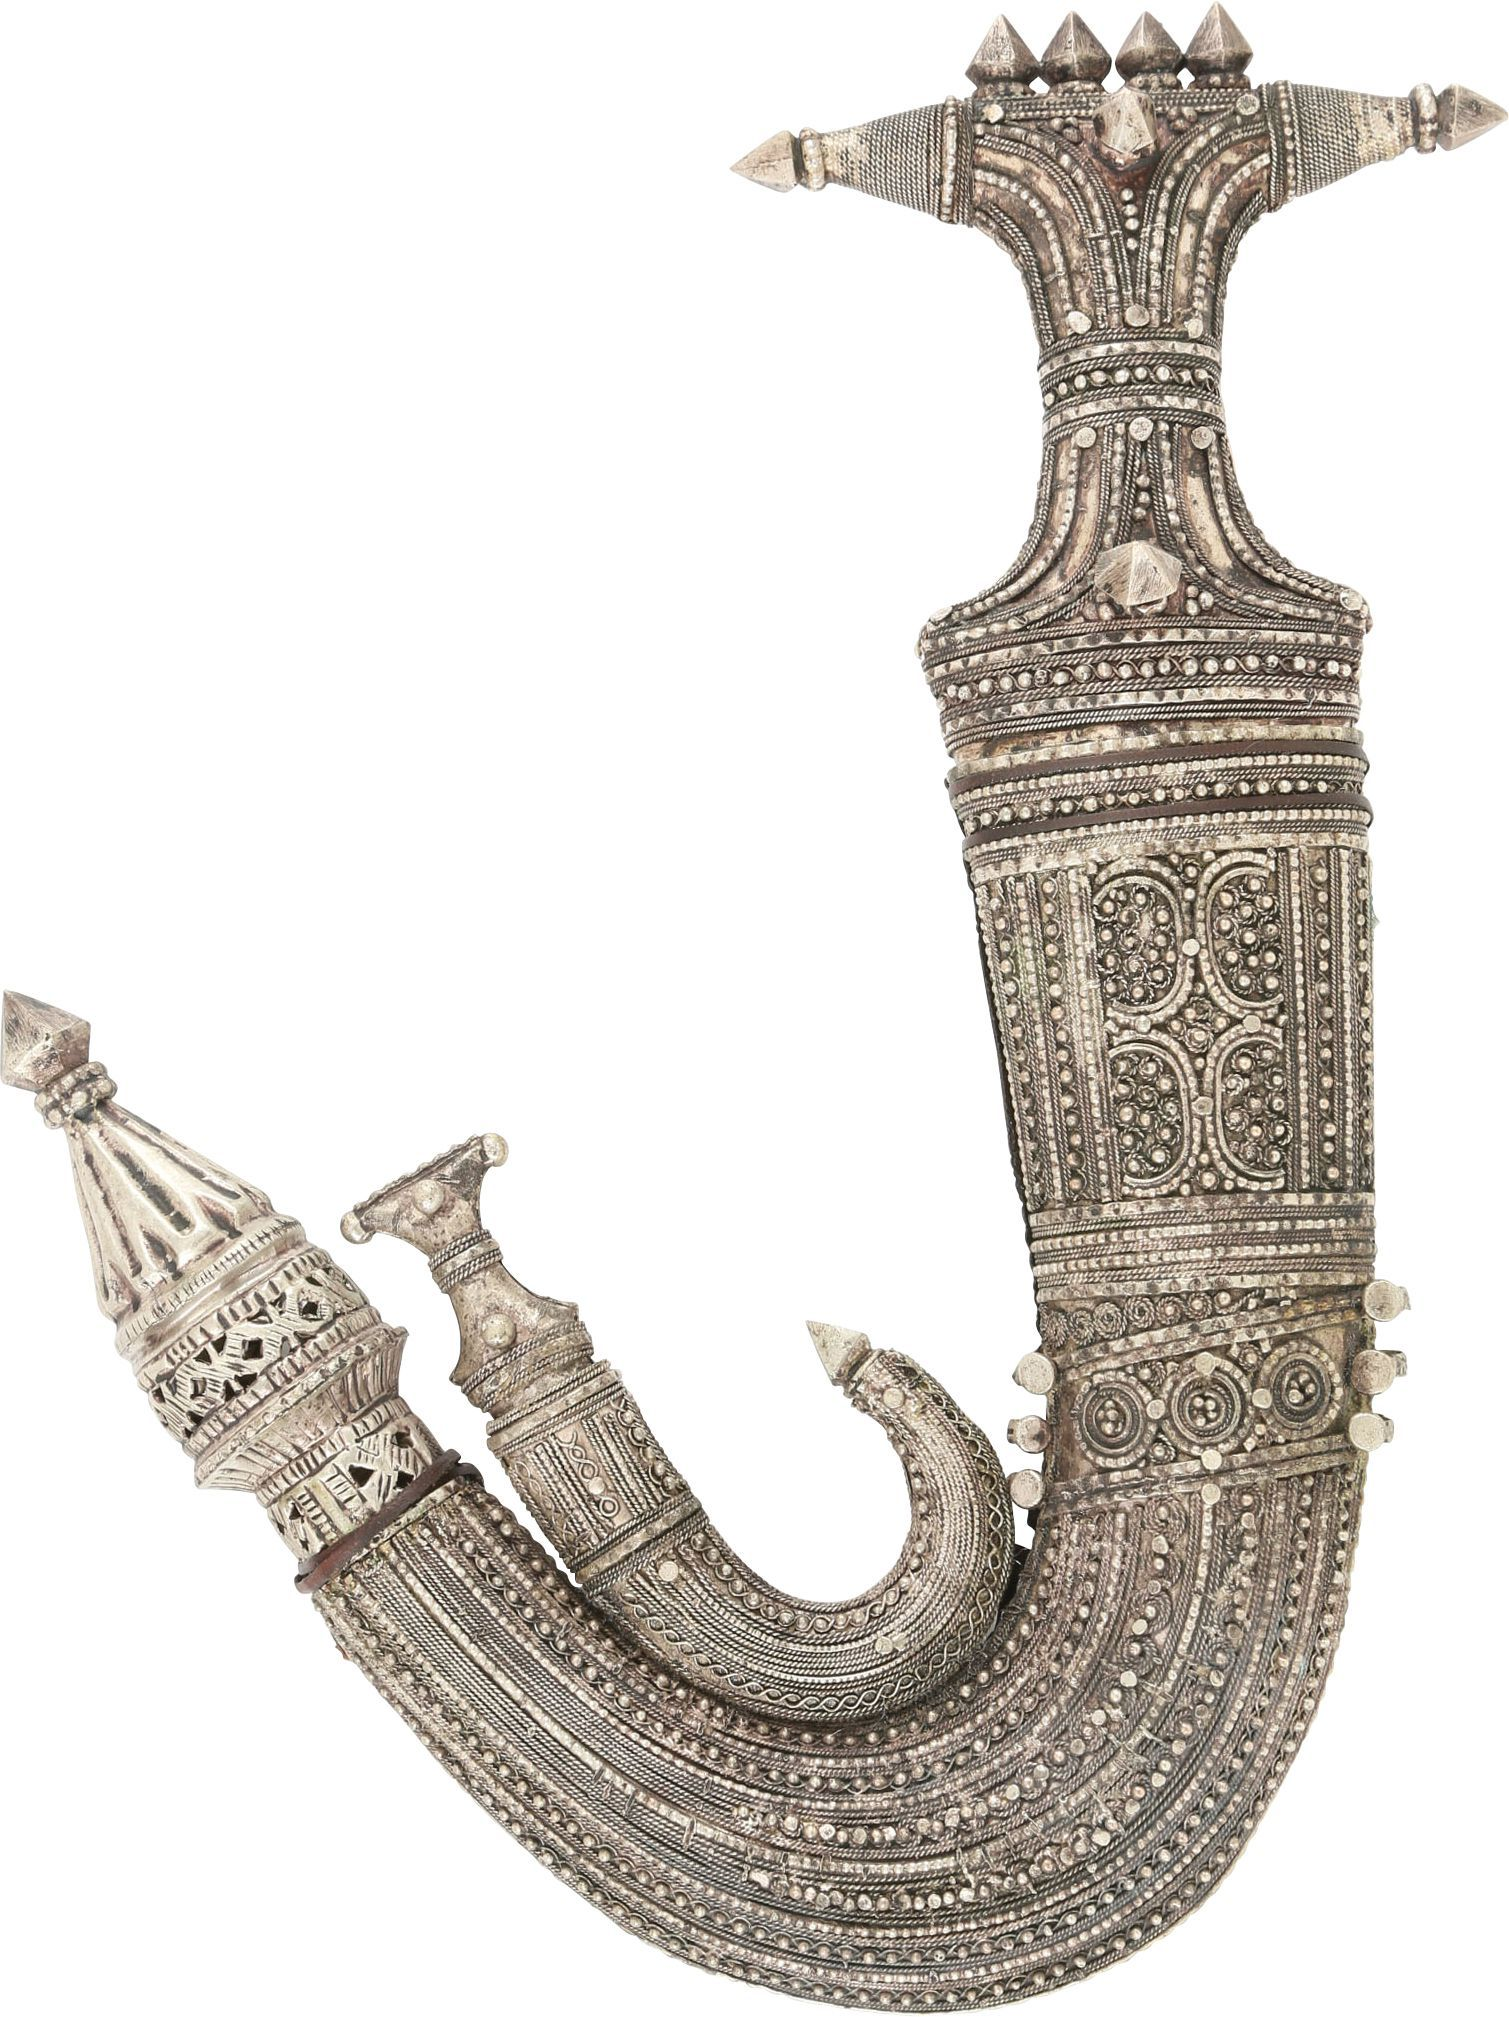 EXTRAORDINARY SILVER MOUNTED ARAB JAMBIYA - Fagan Arms